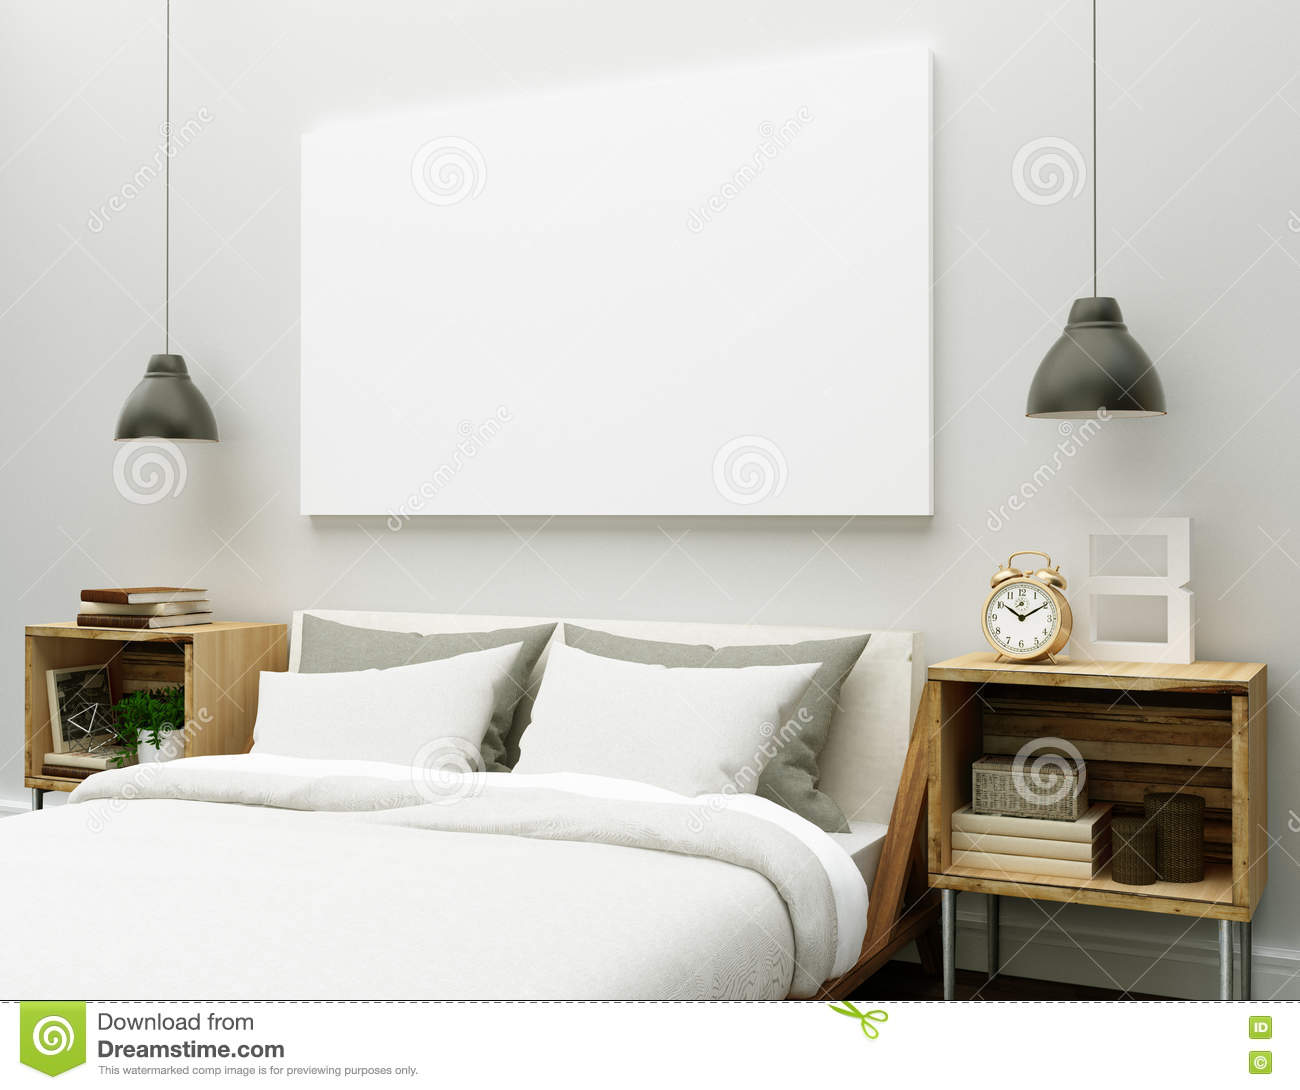 Blank Canvas In The Bedroom Stock Image Image Of Cabinet White 78308881